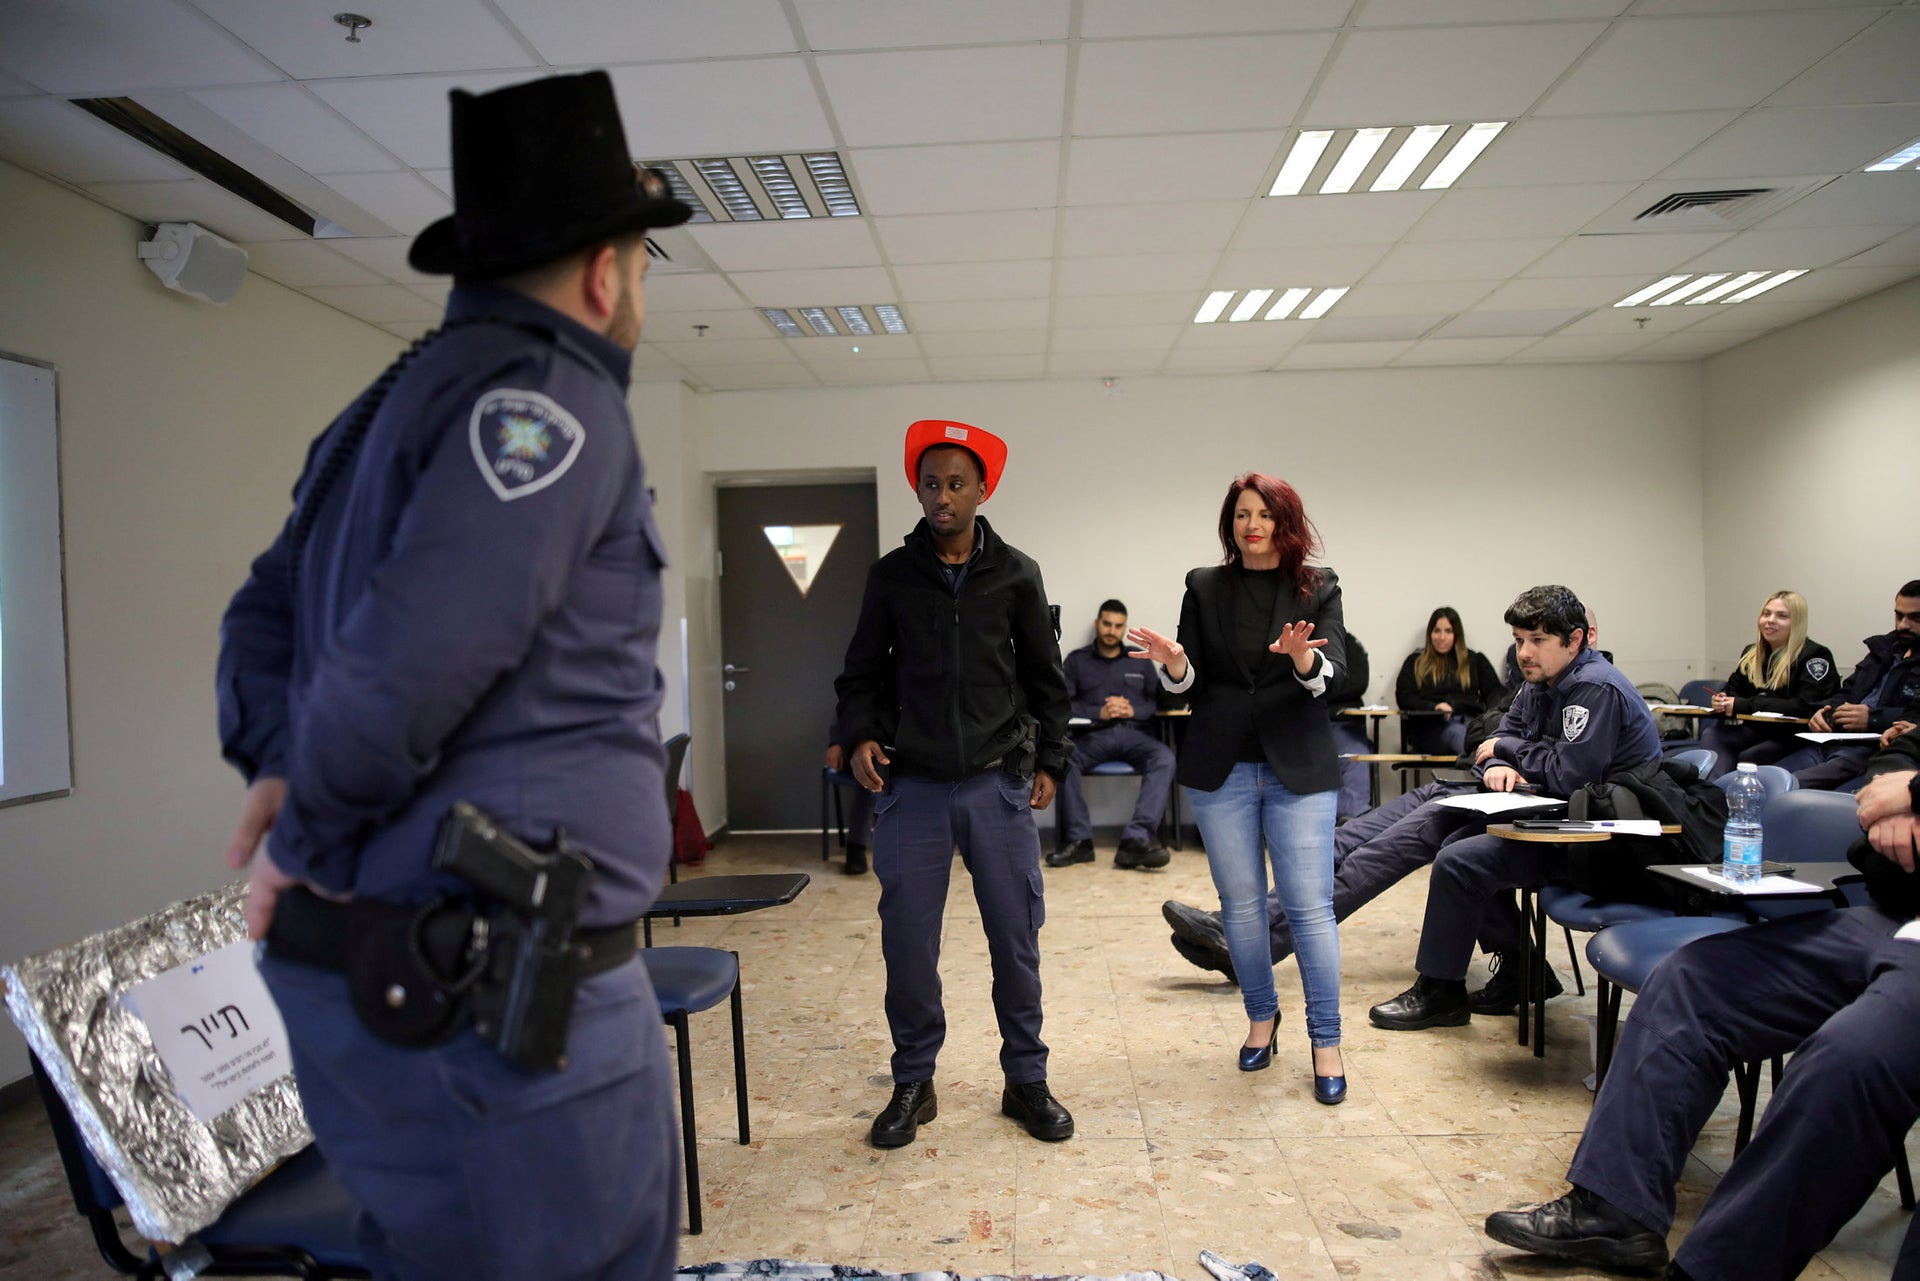 Israeli police officers participate in a special training session ahead of the Eurovision Song contest which will be held in Tel Aviv in May